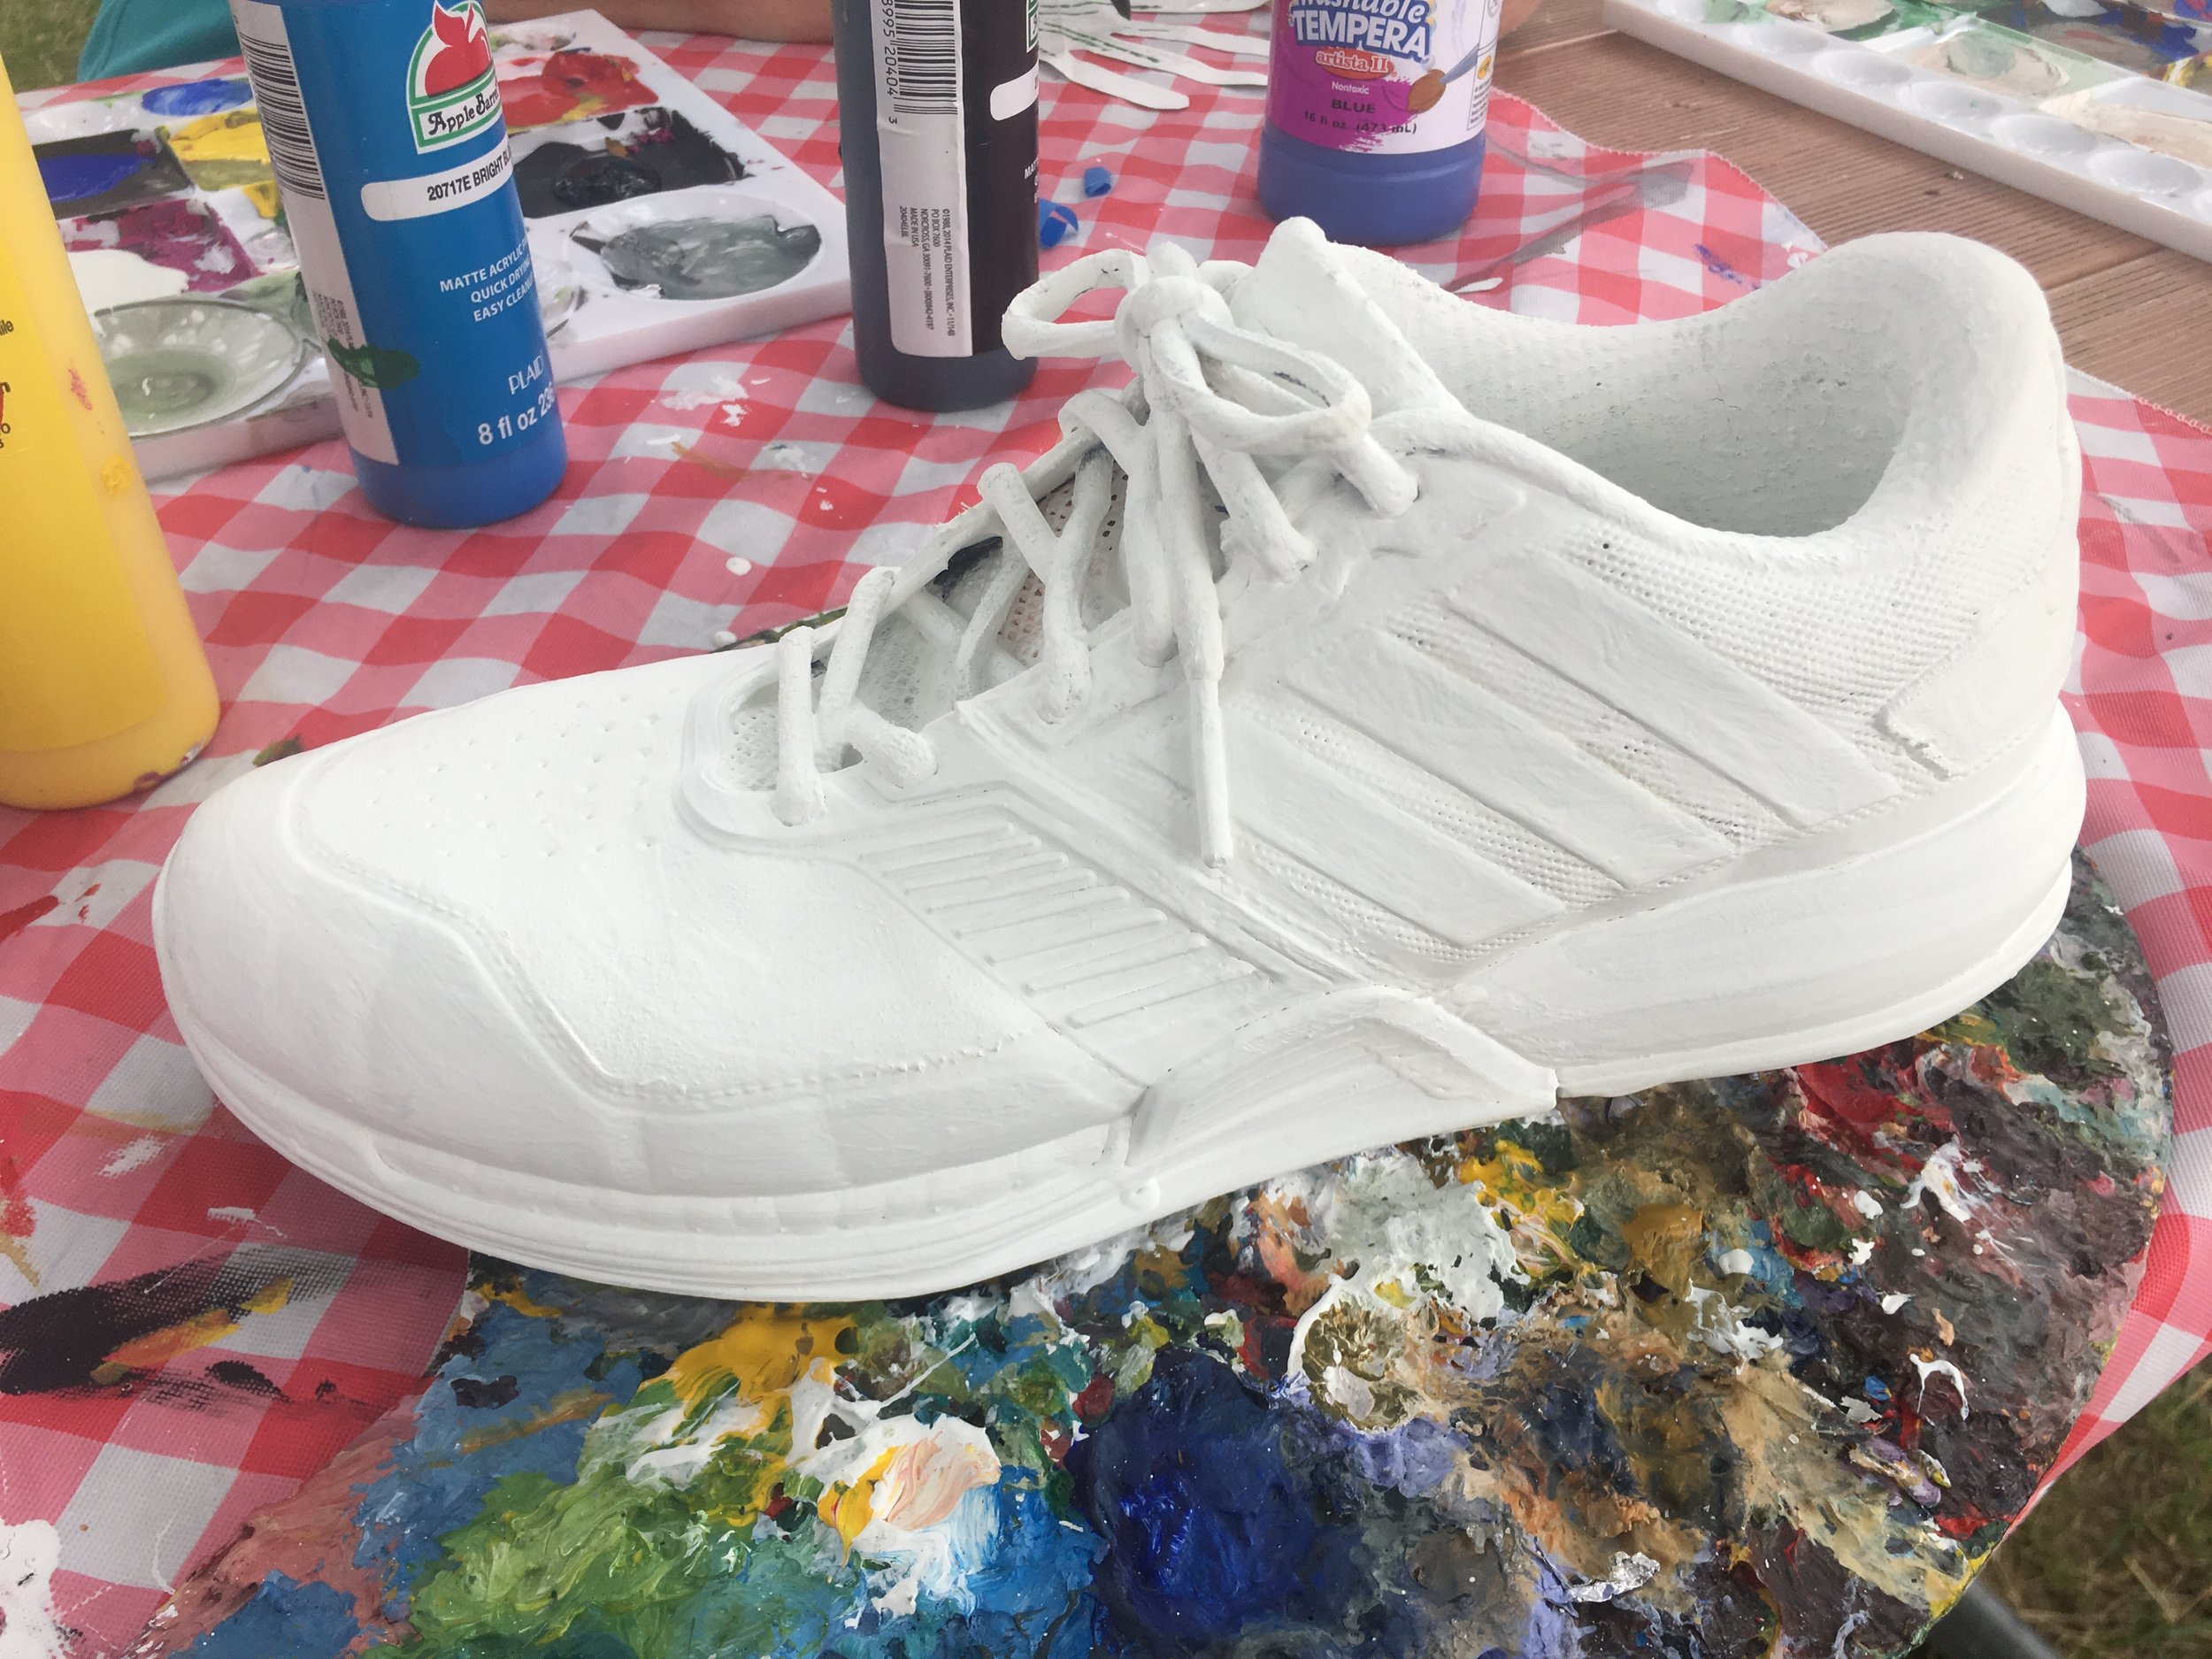 Step 2: Prime shoe with gesso. This not only makes it an easier surface to paint on, but for tricky areas like the laces it kind of acts like a glue.